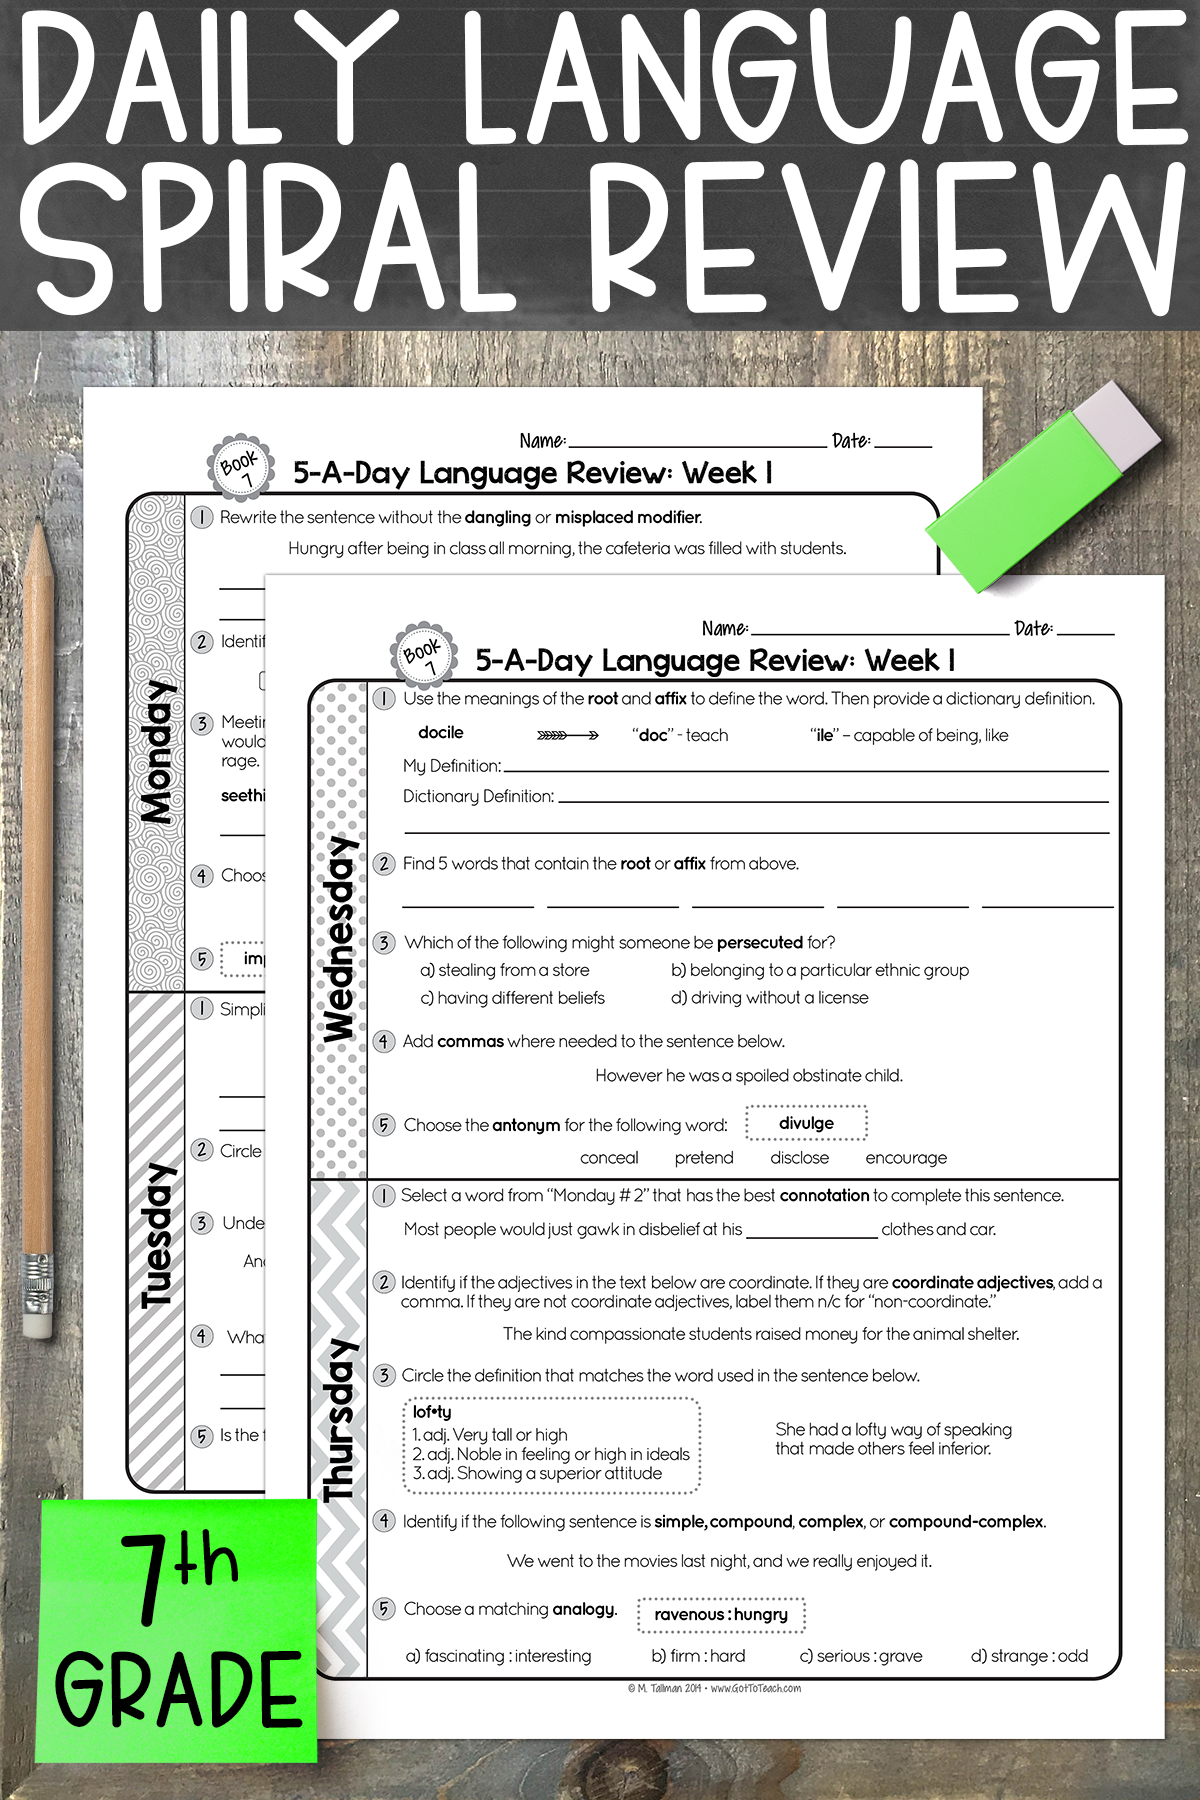 small resolution of 7th Grade Daily Language Spiral Review • Teacher Thrive   Spiral review